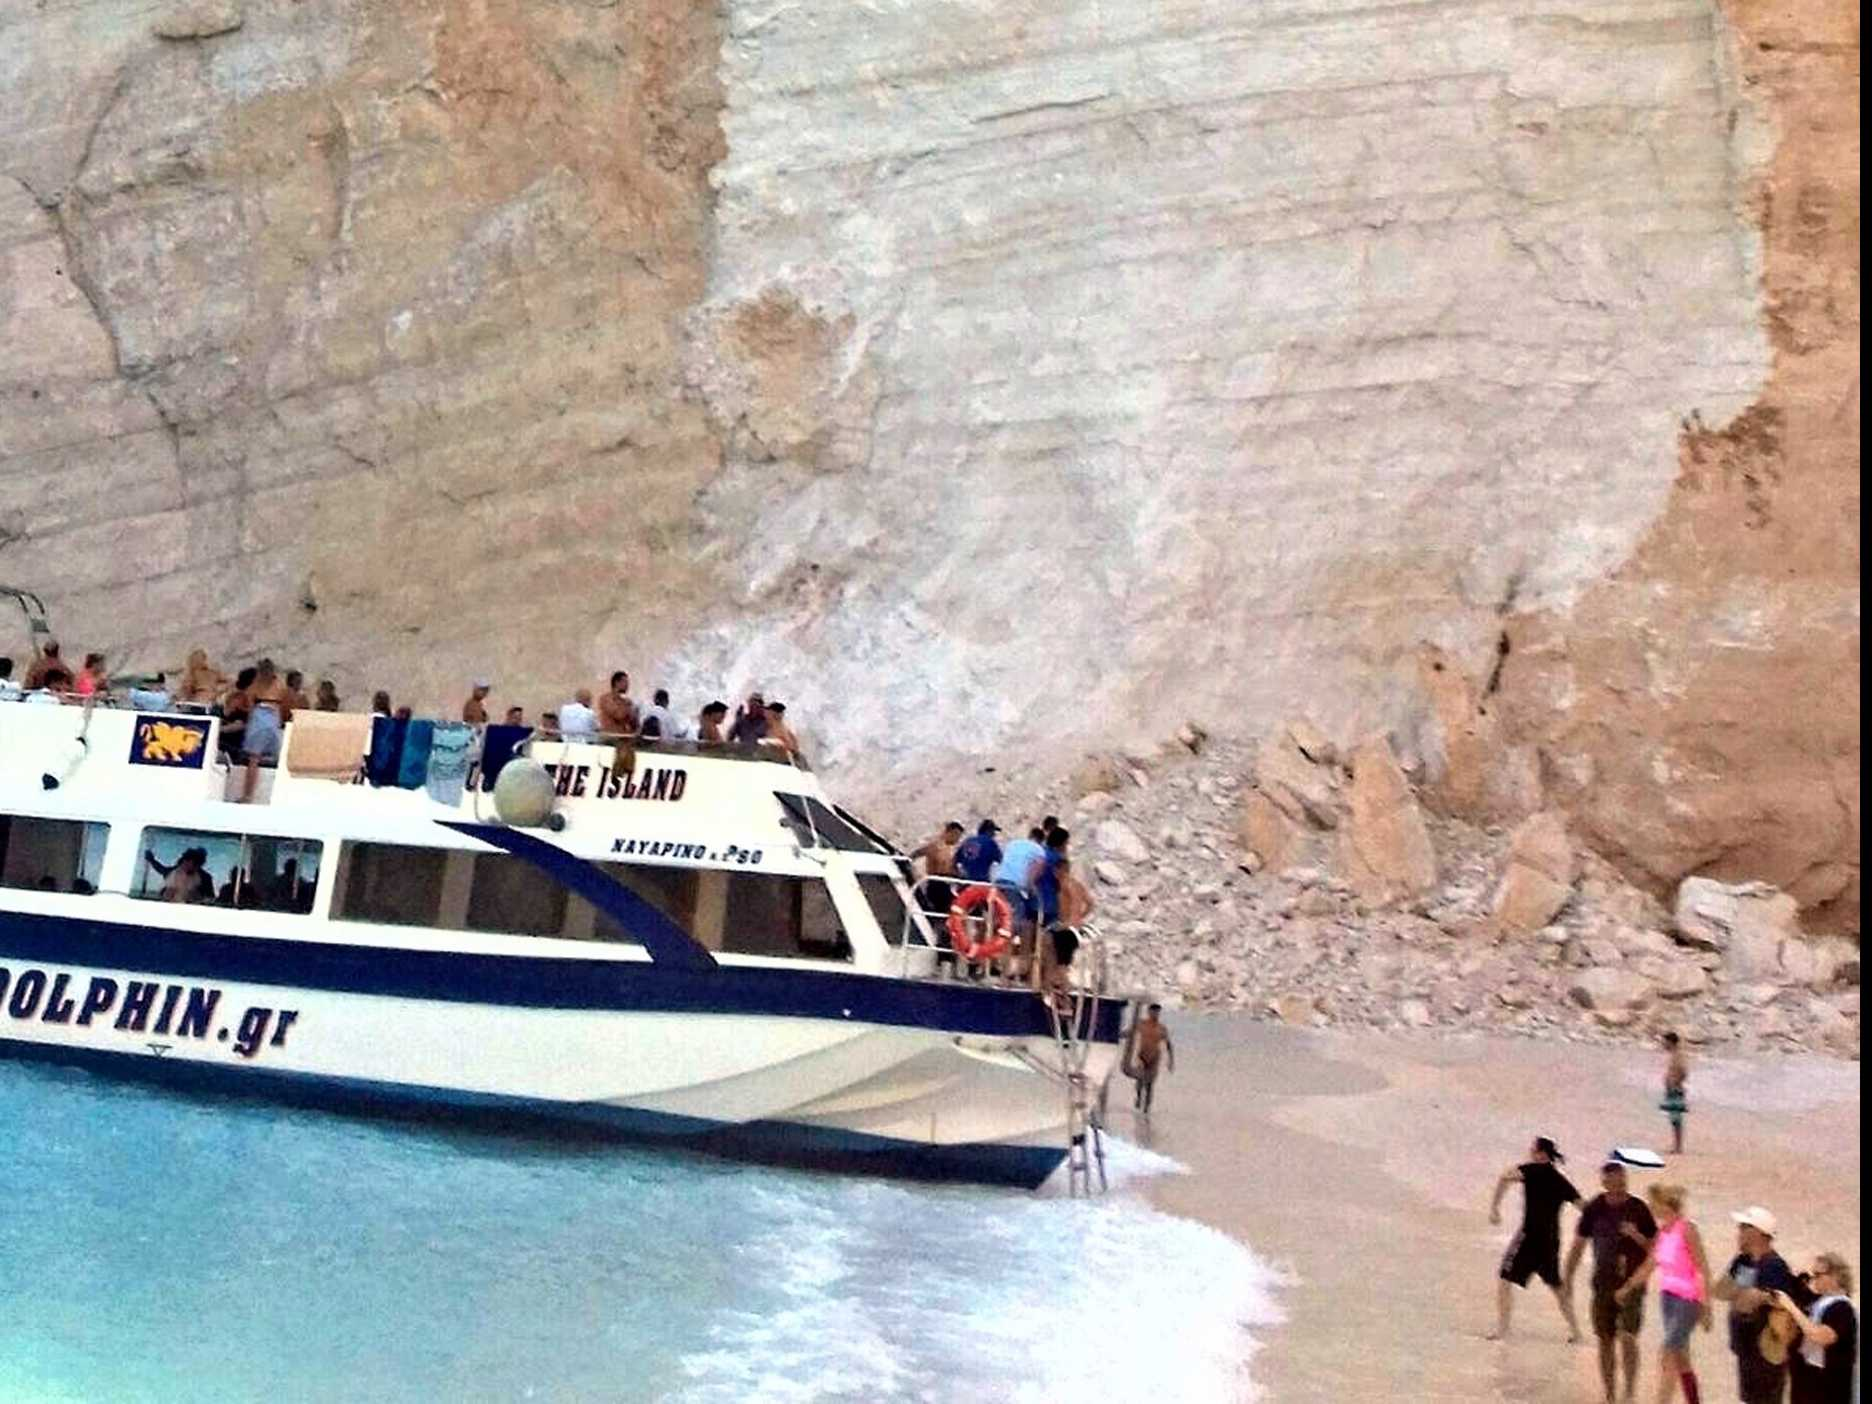 Landslide at Greek 'Shipwrecked' Beach Injures 7